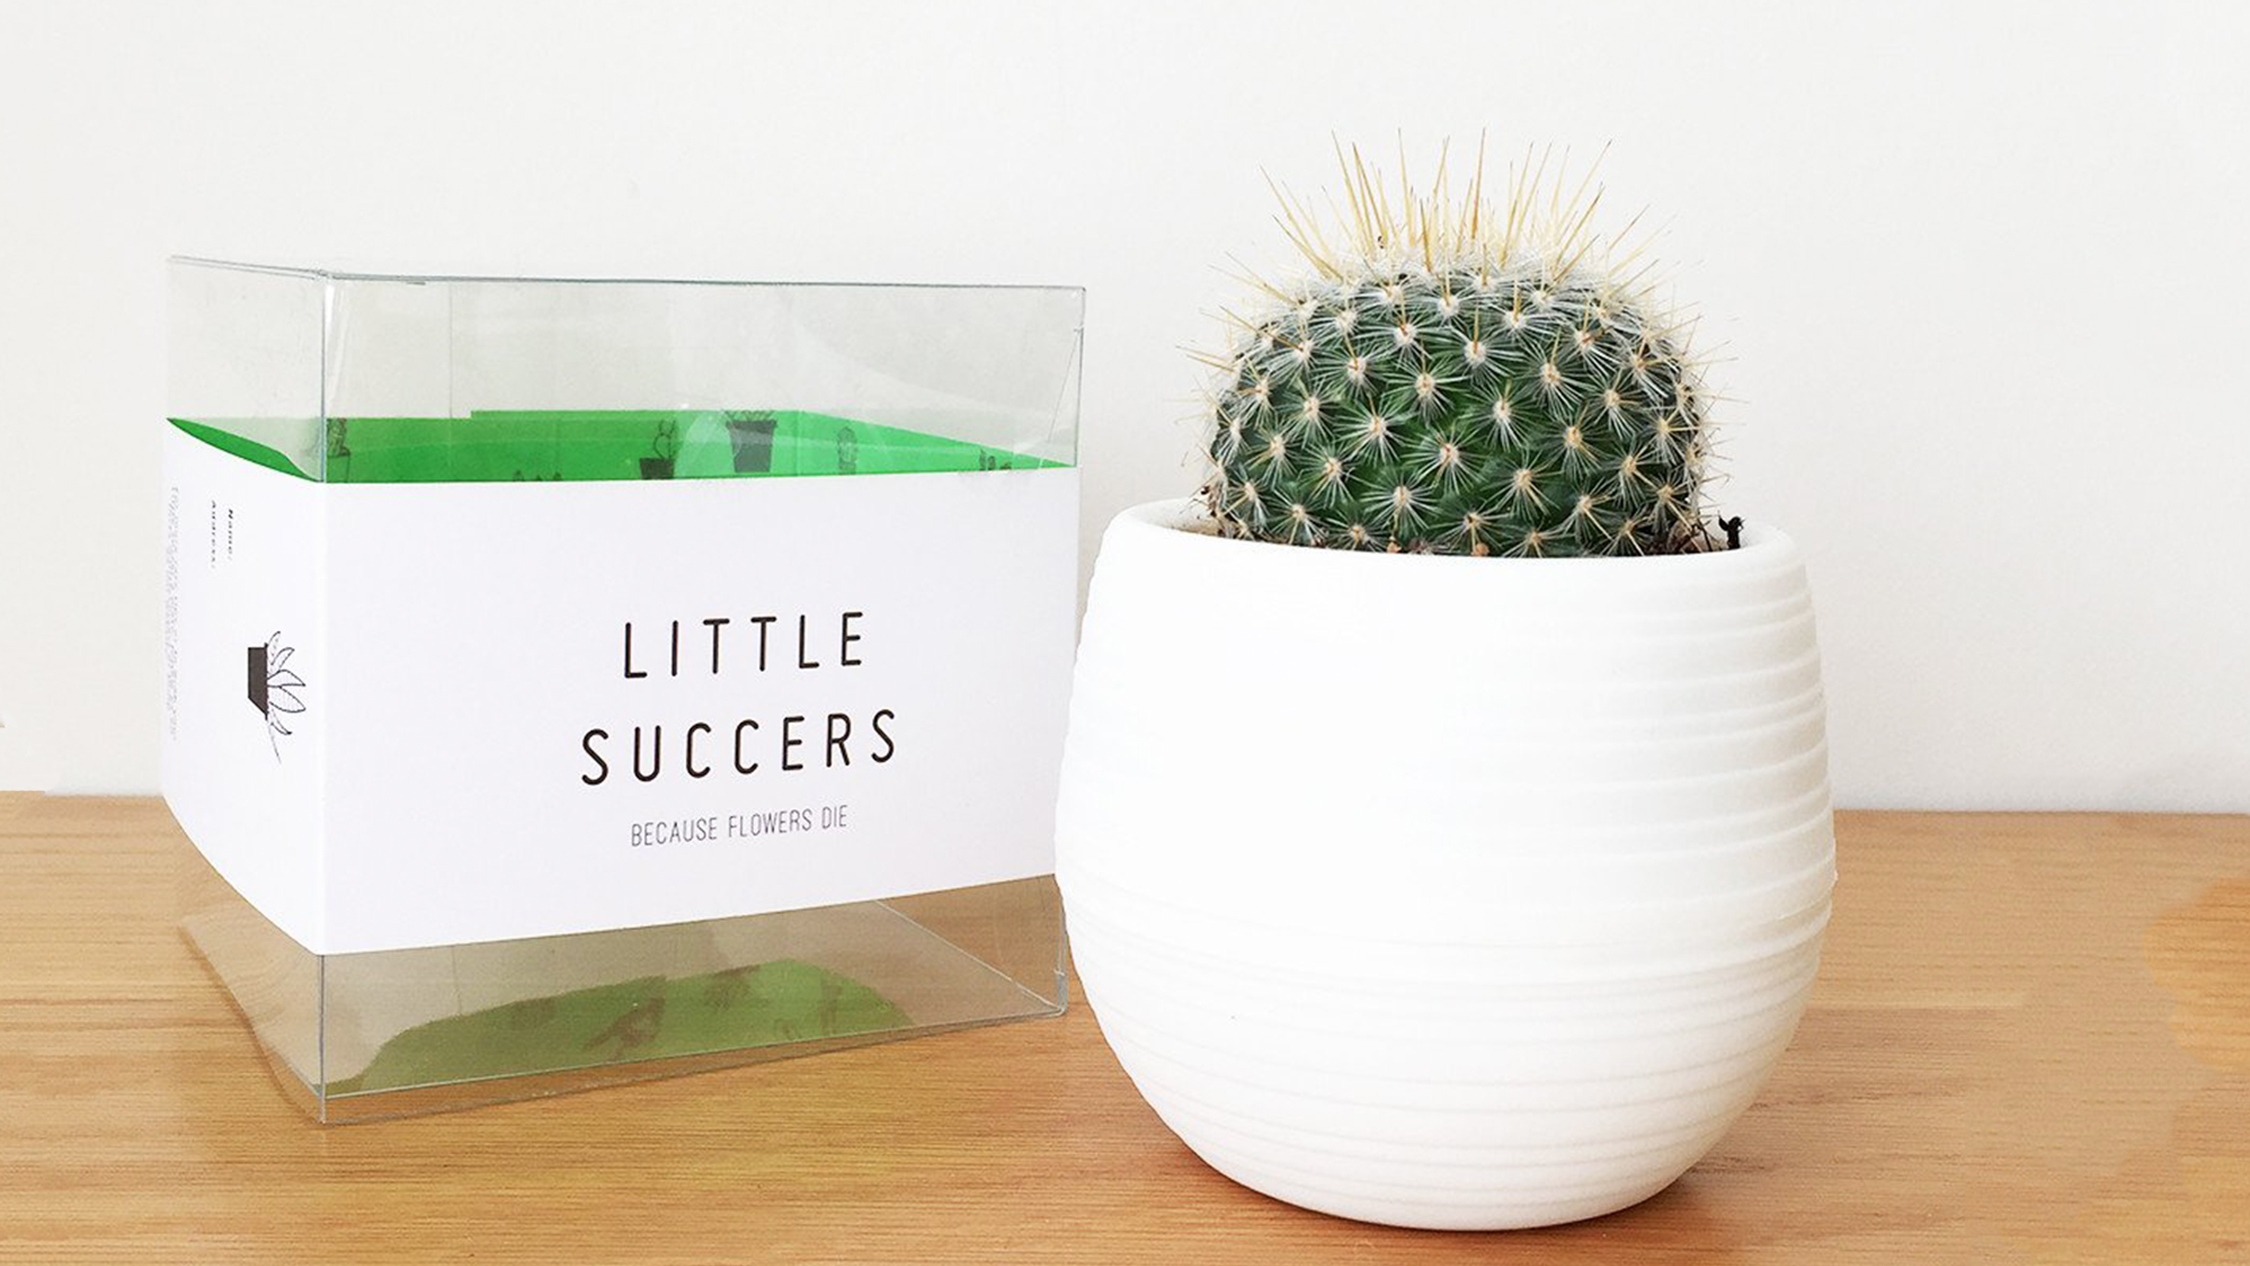 Cactus from Little Succers